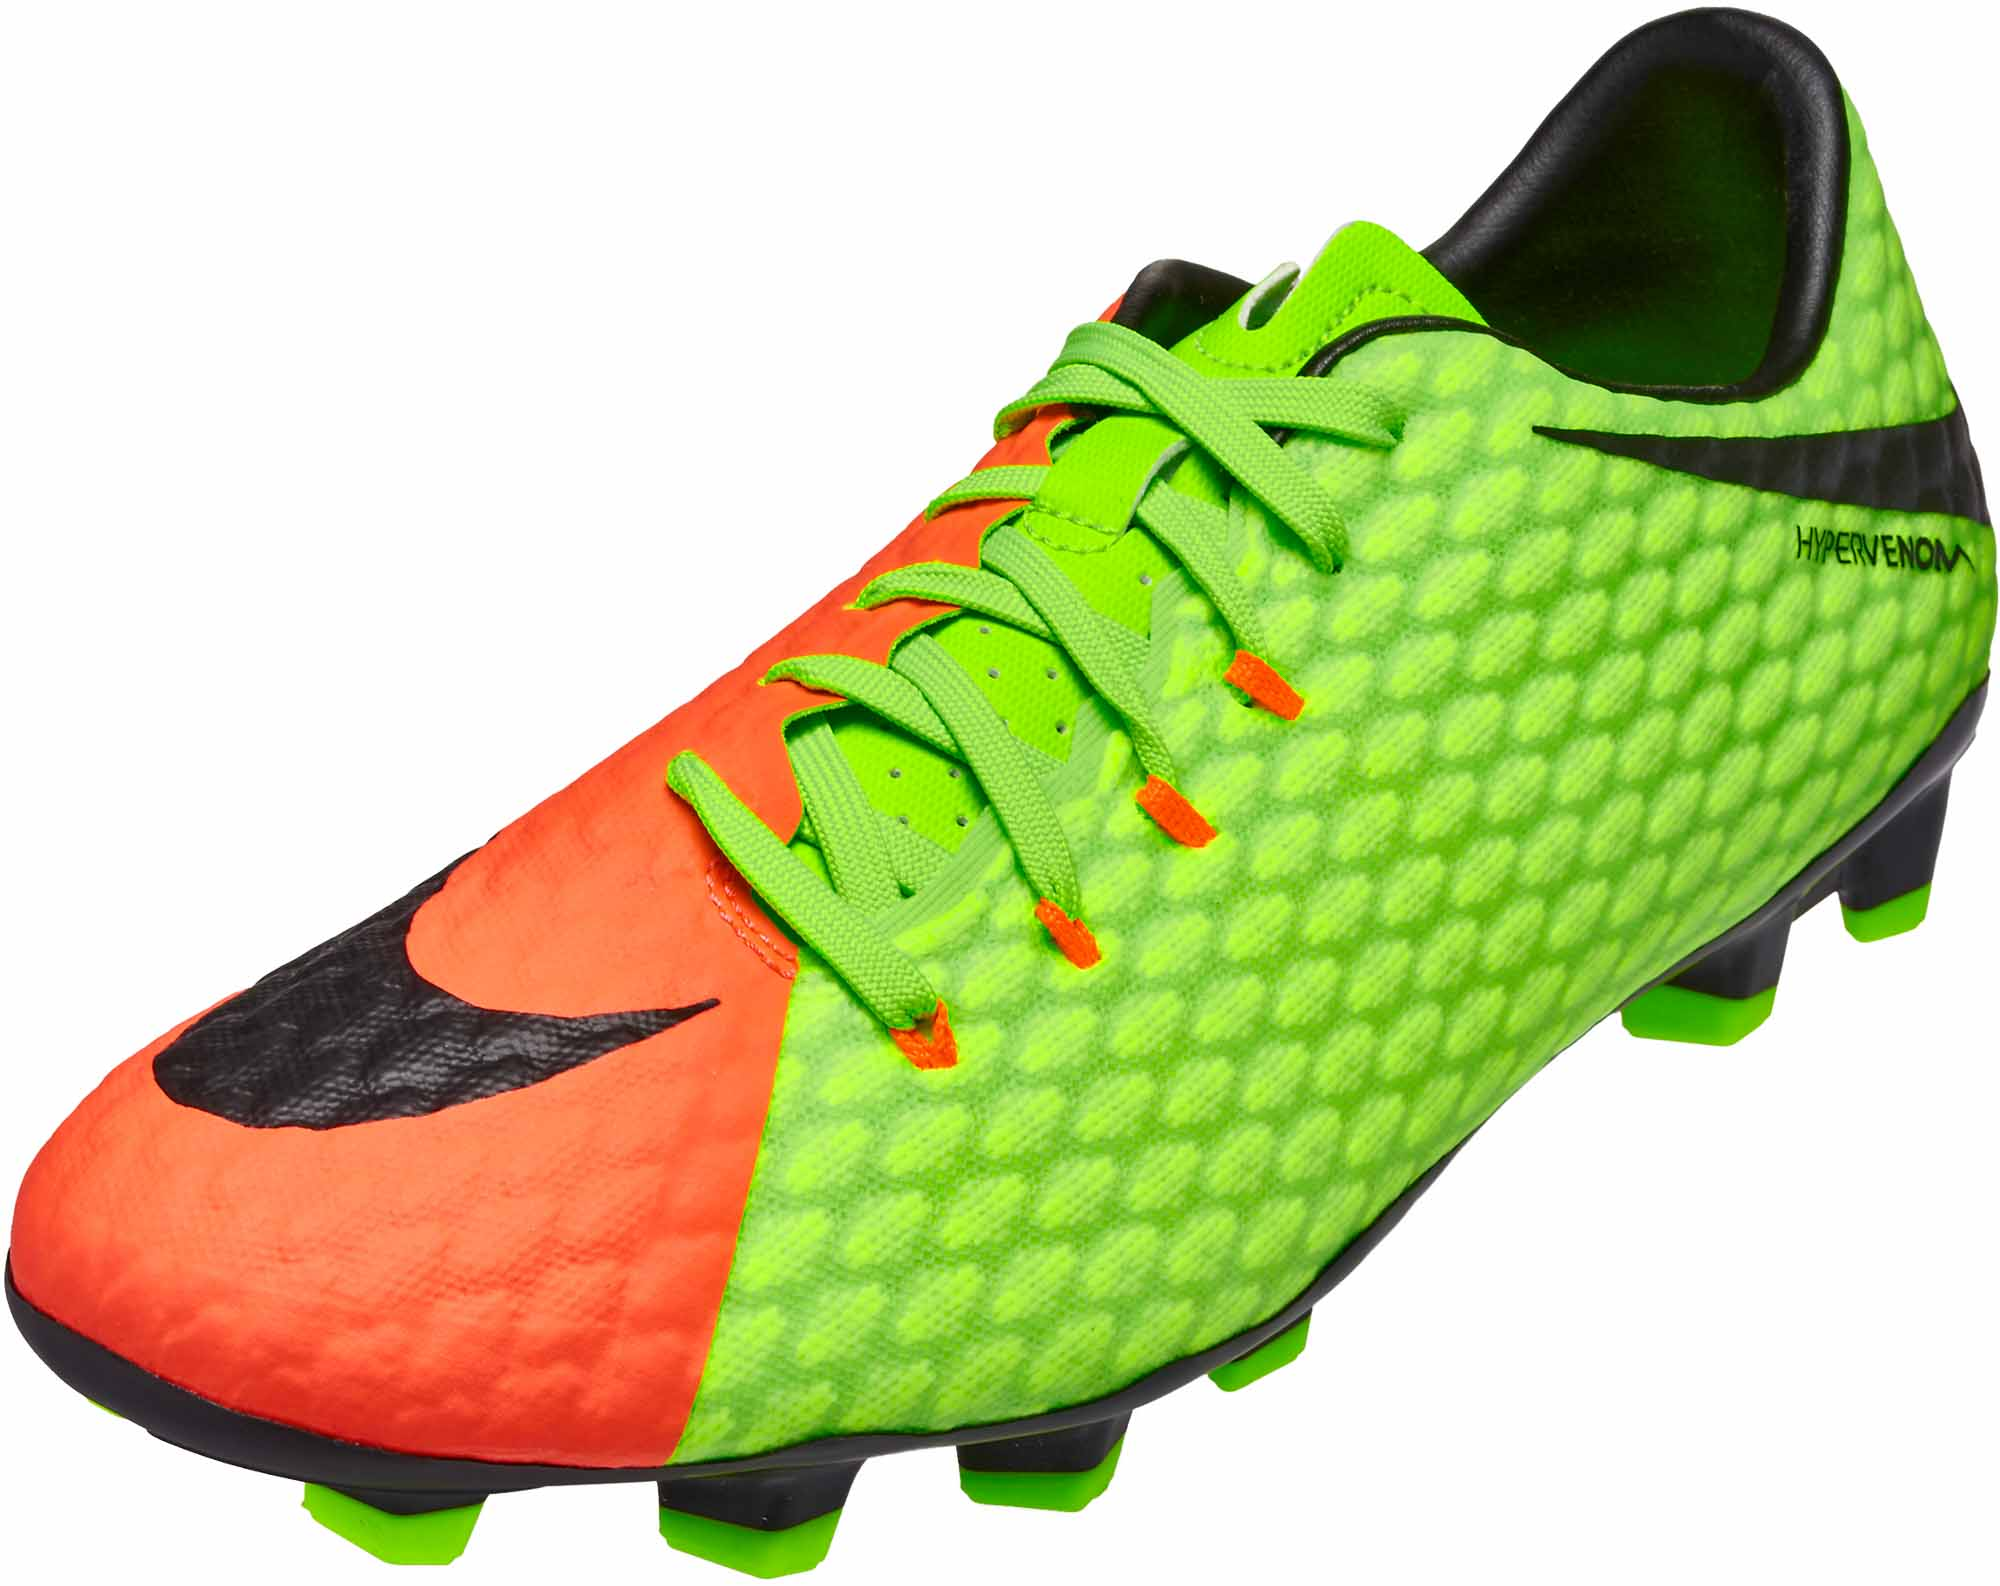 b9c131ca606 Nike Hypervenom Phelon III FG - Electric Green Hypervenom Phelon Cleats